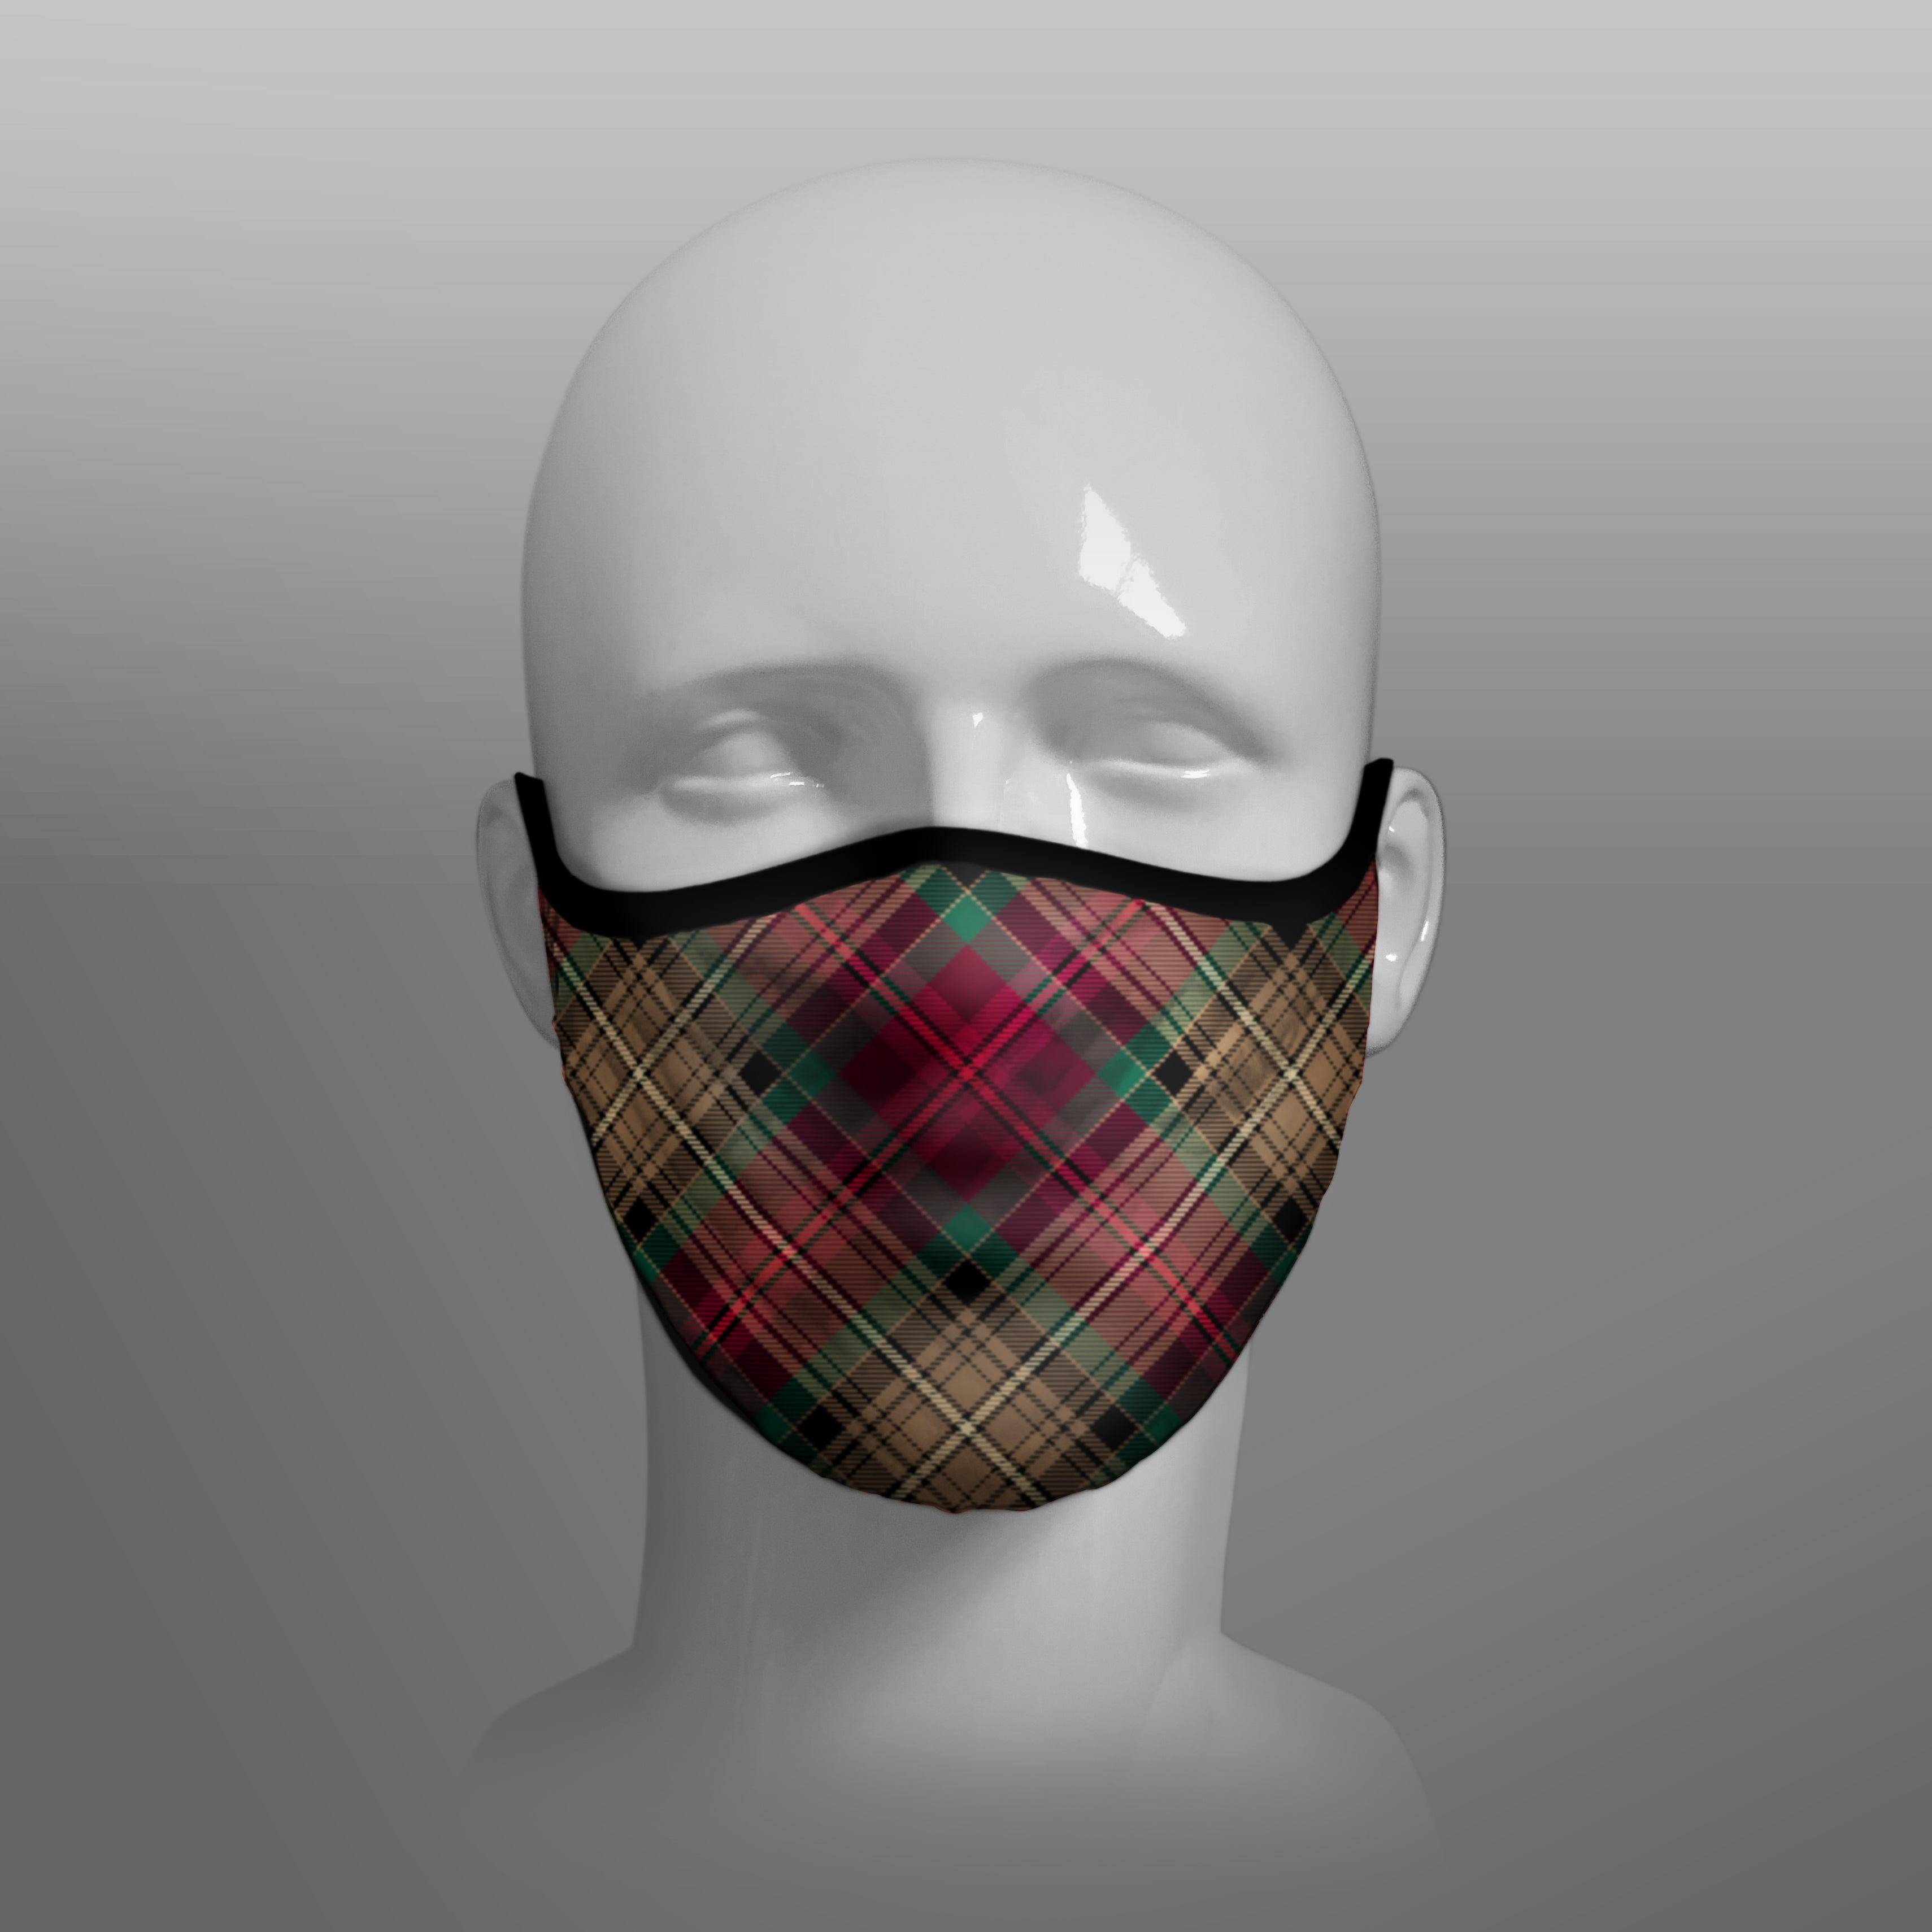 The Declaration of Arbroath 6th April 1320 700th Anniversary 7th Centennial Contoured Tartan - Scottish Saltire - Face Mask extra large